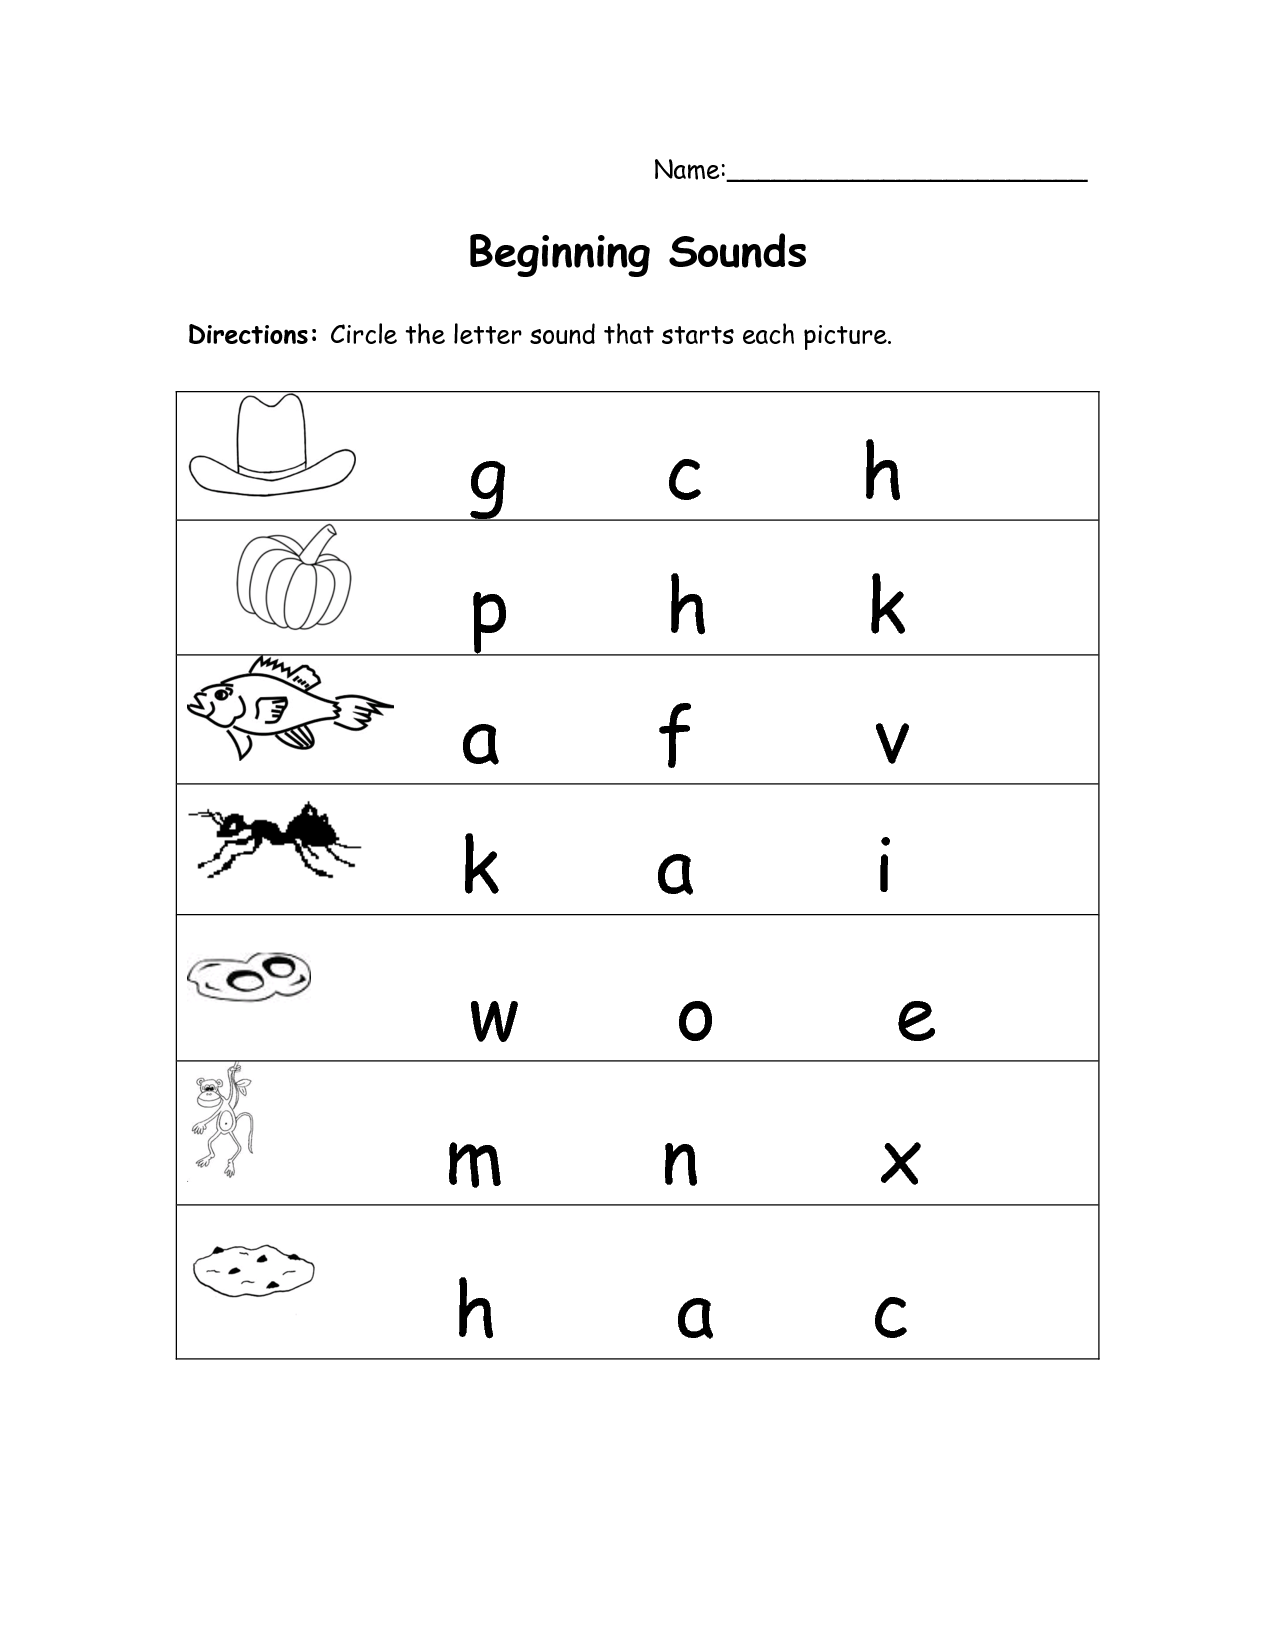 beginning phonics worksheets worksheets releaseboard free printable worksheets and activities. Black Bedroom Furniture Sets. Home Design Ideas